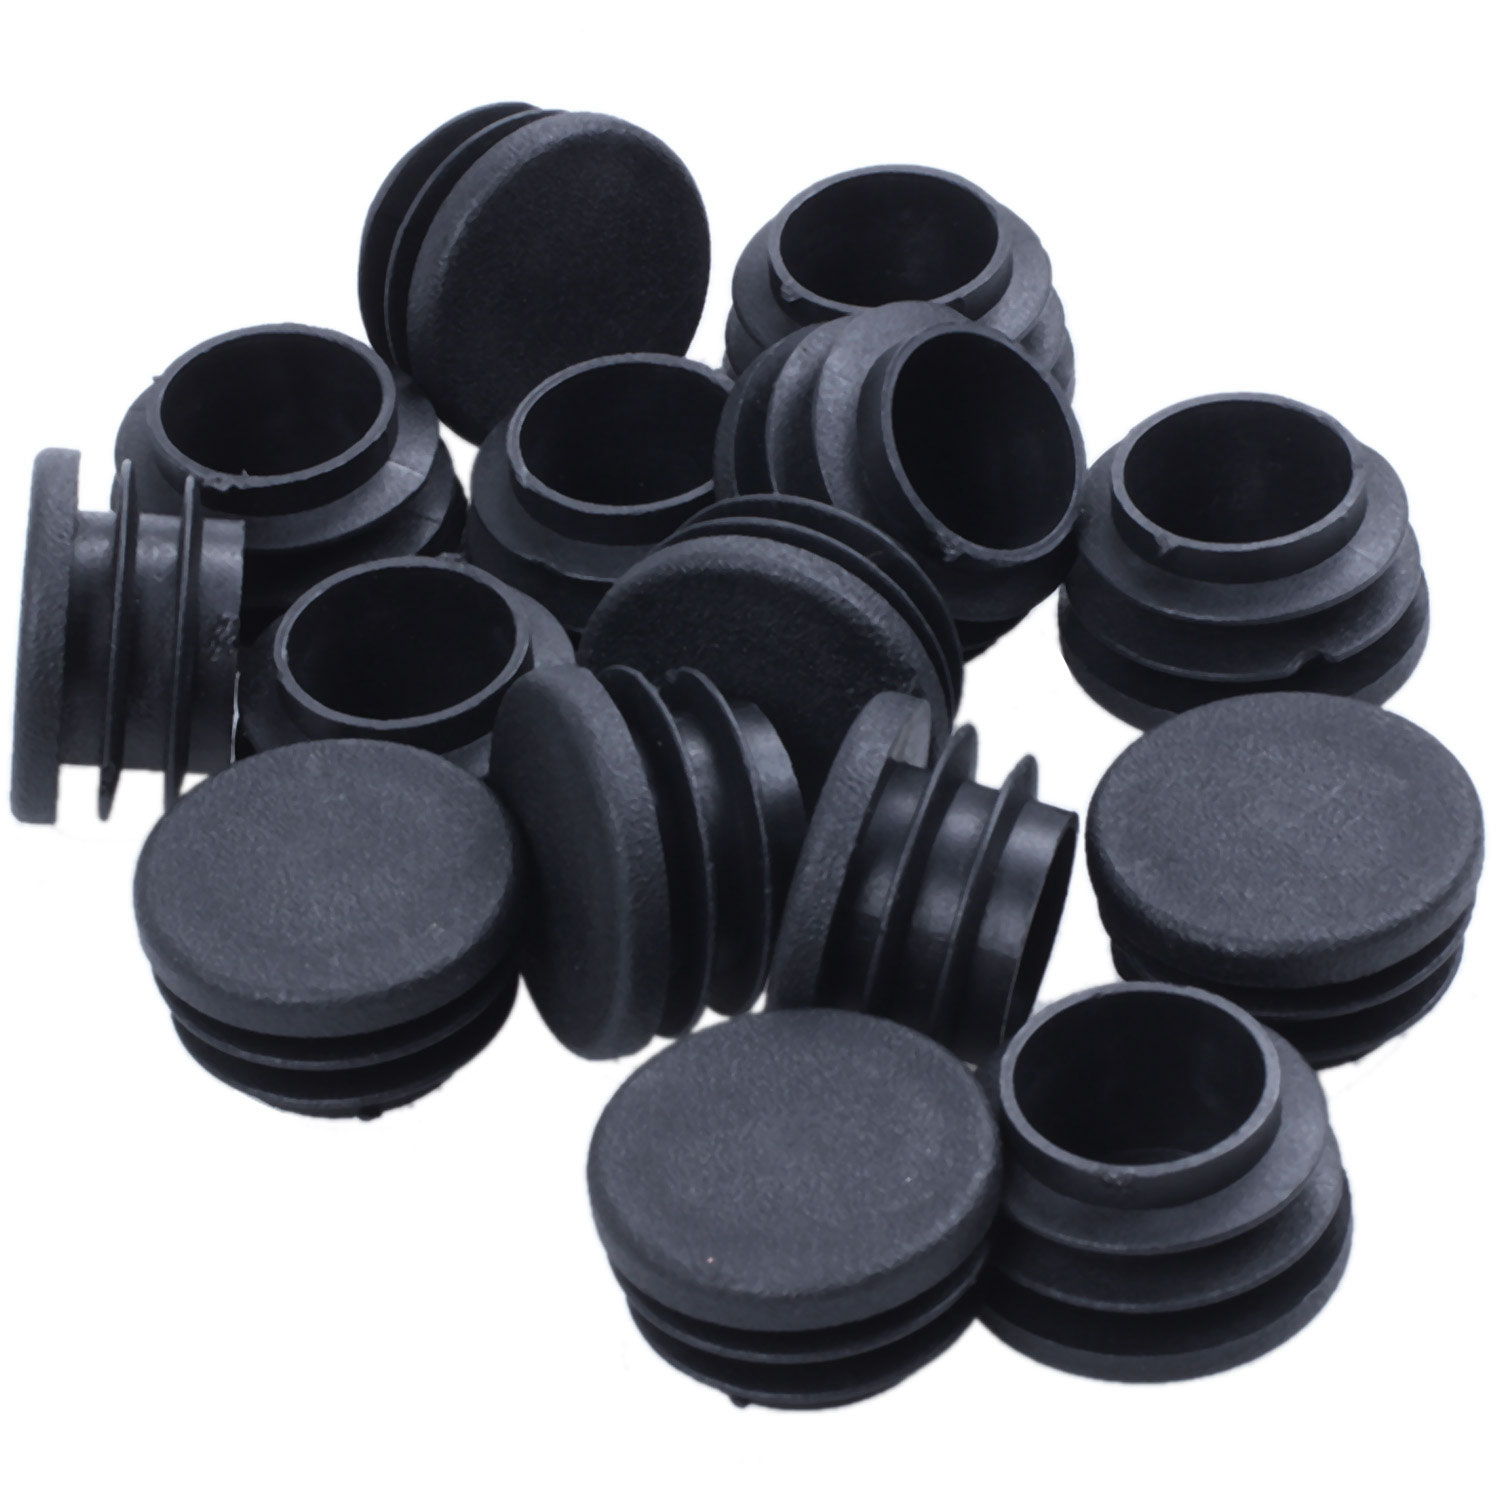 15 pieces of Chair Table Legs End Plug 25mm Diameter Round Plastic Inserted Tube15 pieces of Chair Table Legs End Plug 25mm Diameter Round Plastic Inserted Tube